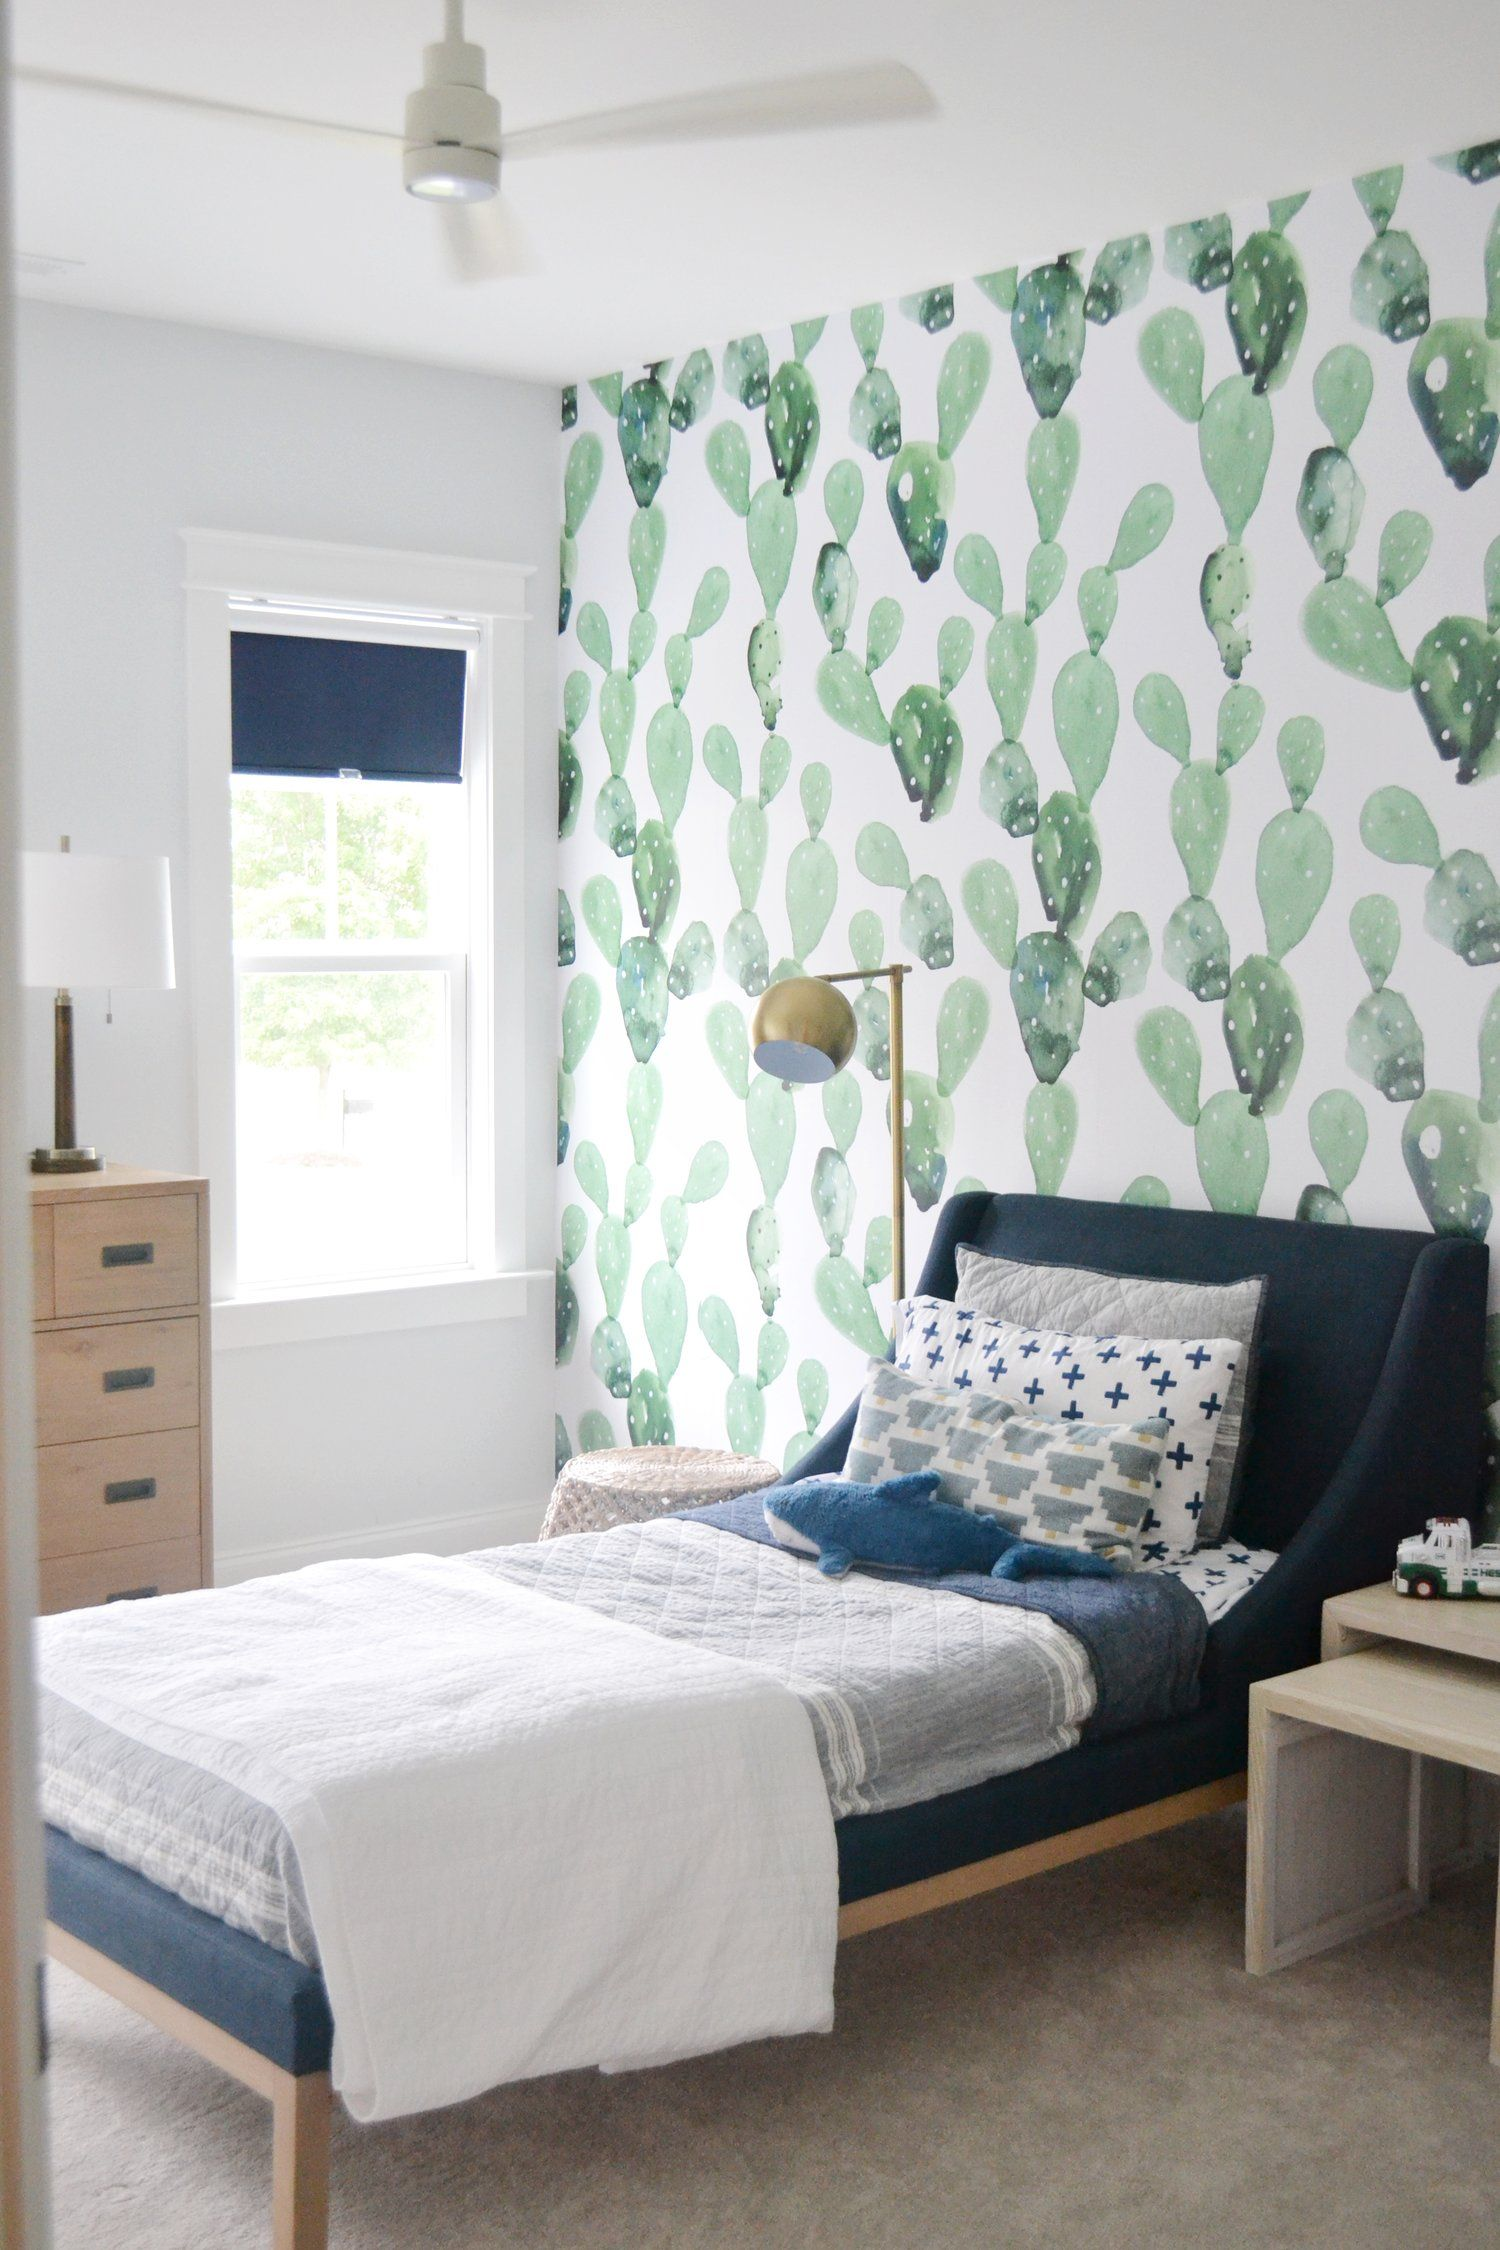 Cactus Removable Wallpaper In A Boys Room Modern Kids Bedroom